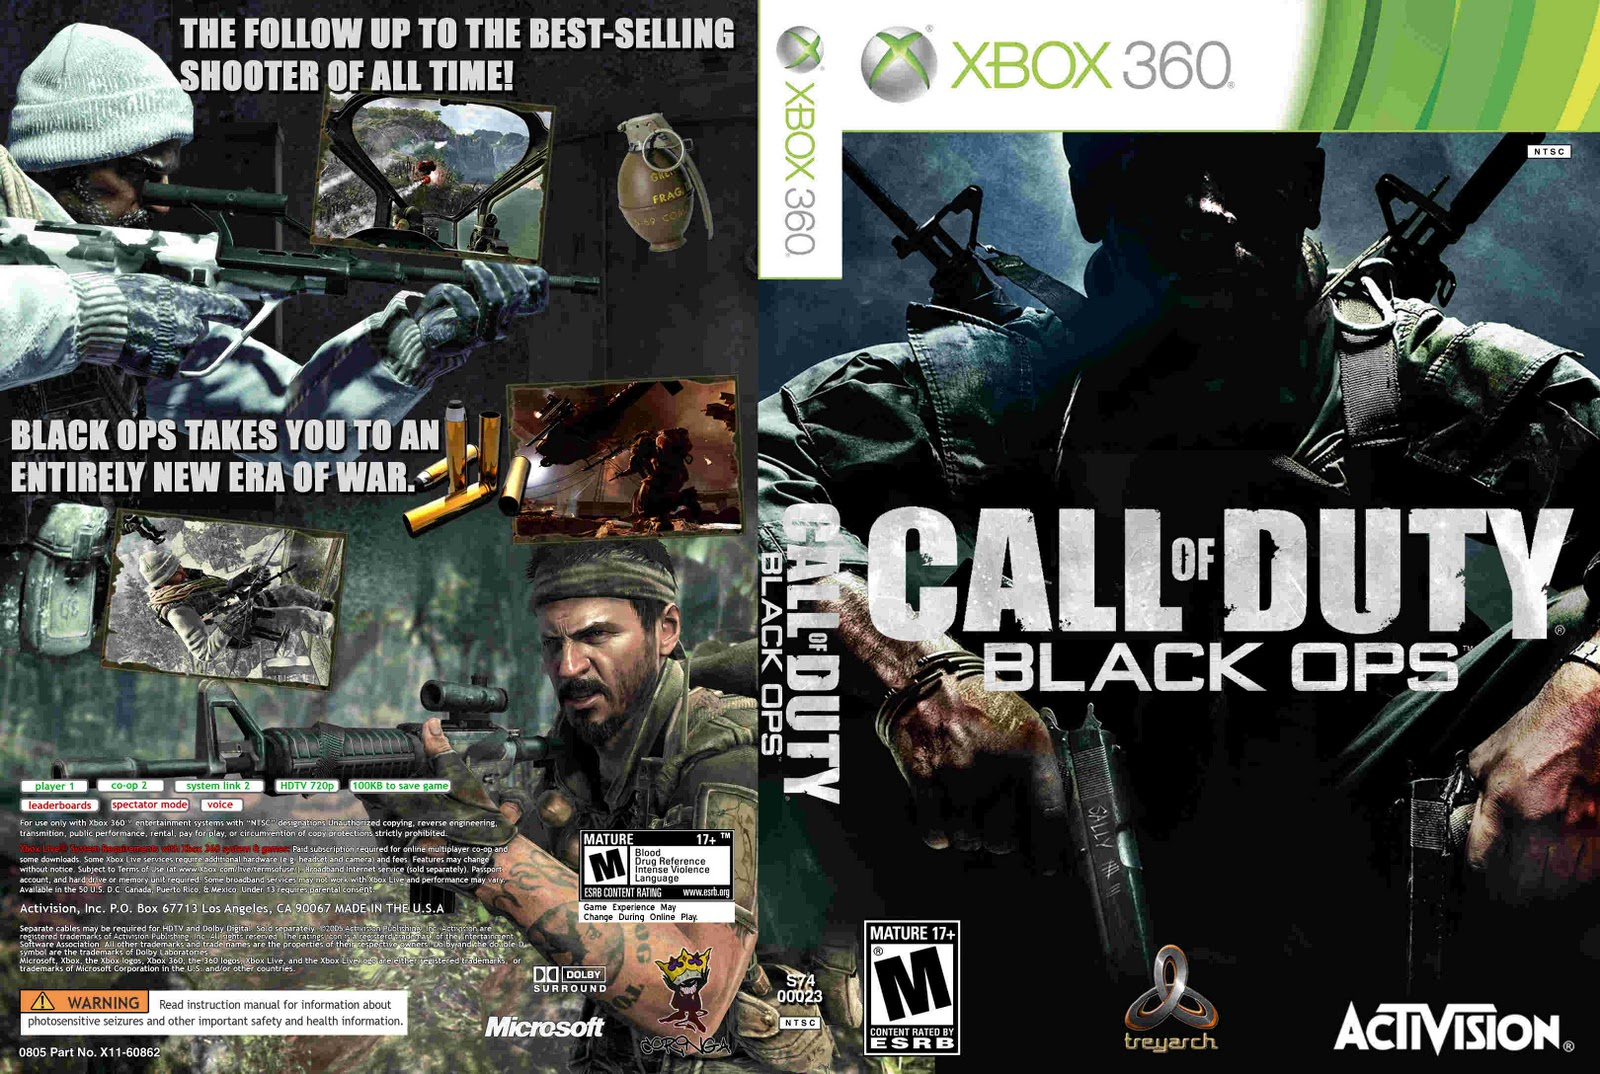 I consider black ops to be the best overall call of duty game